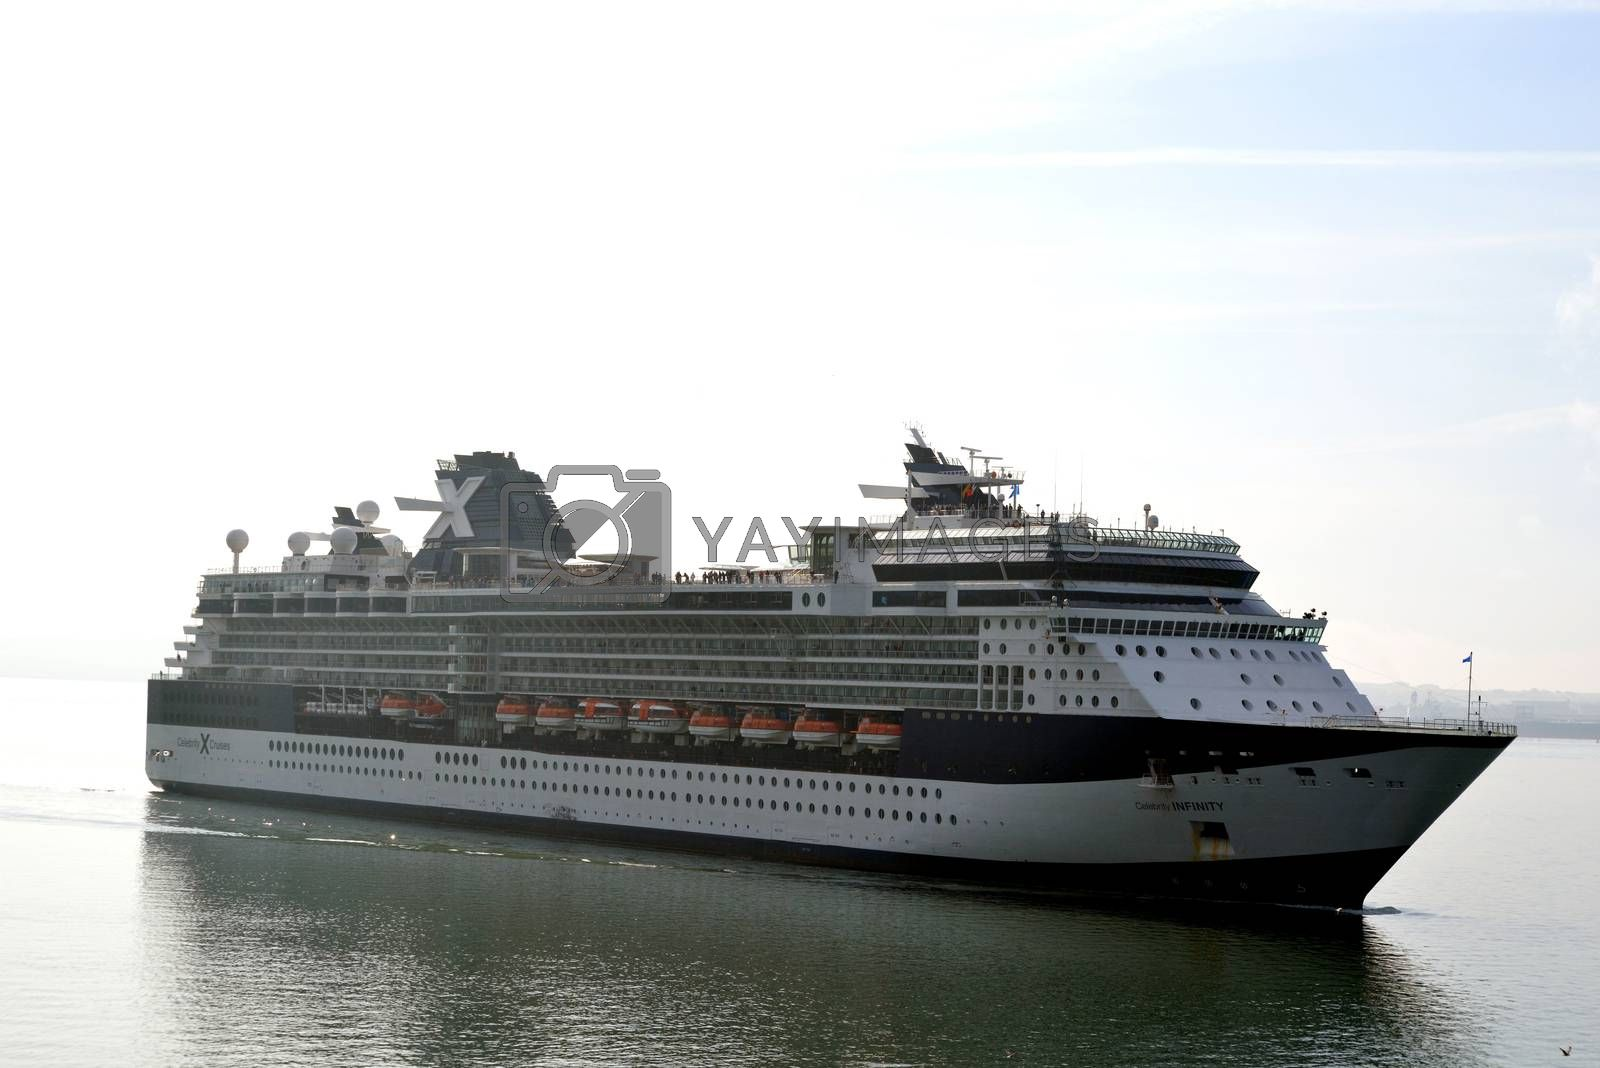 celebrity infinity cruise ship arriving at cobh in ireland